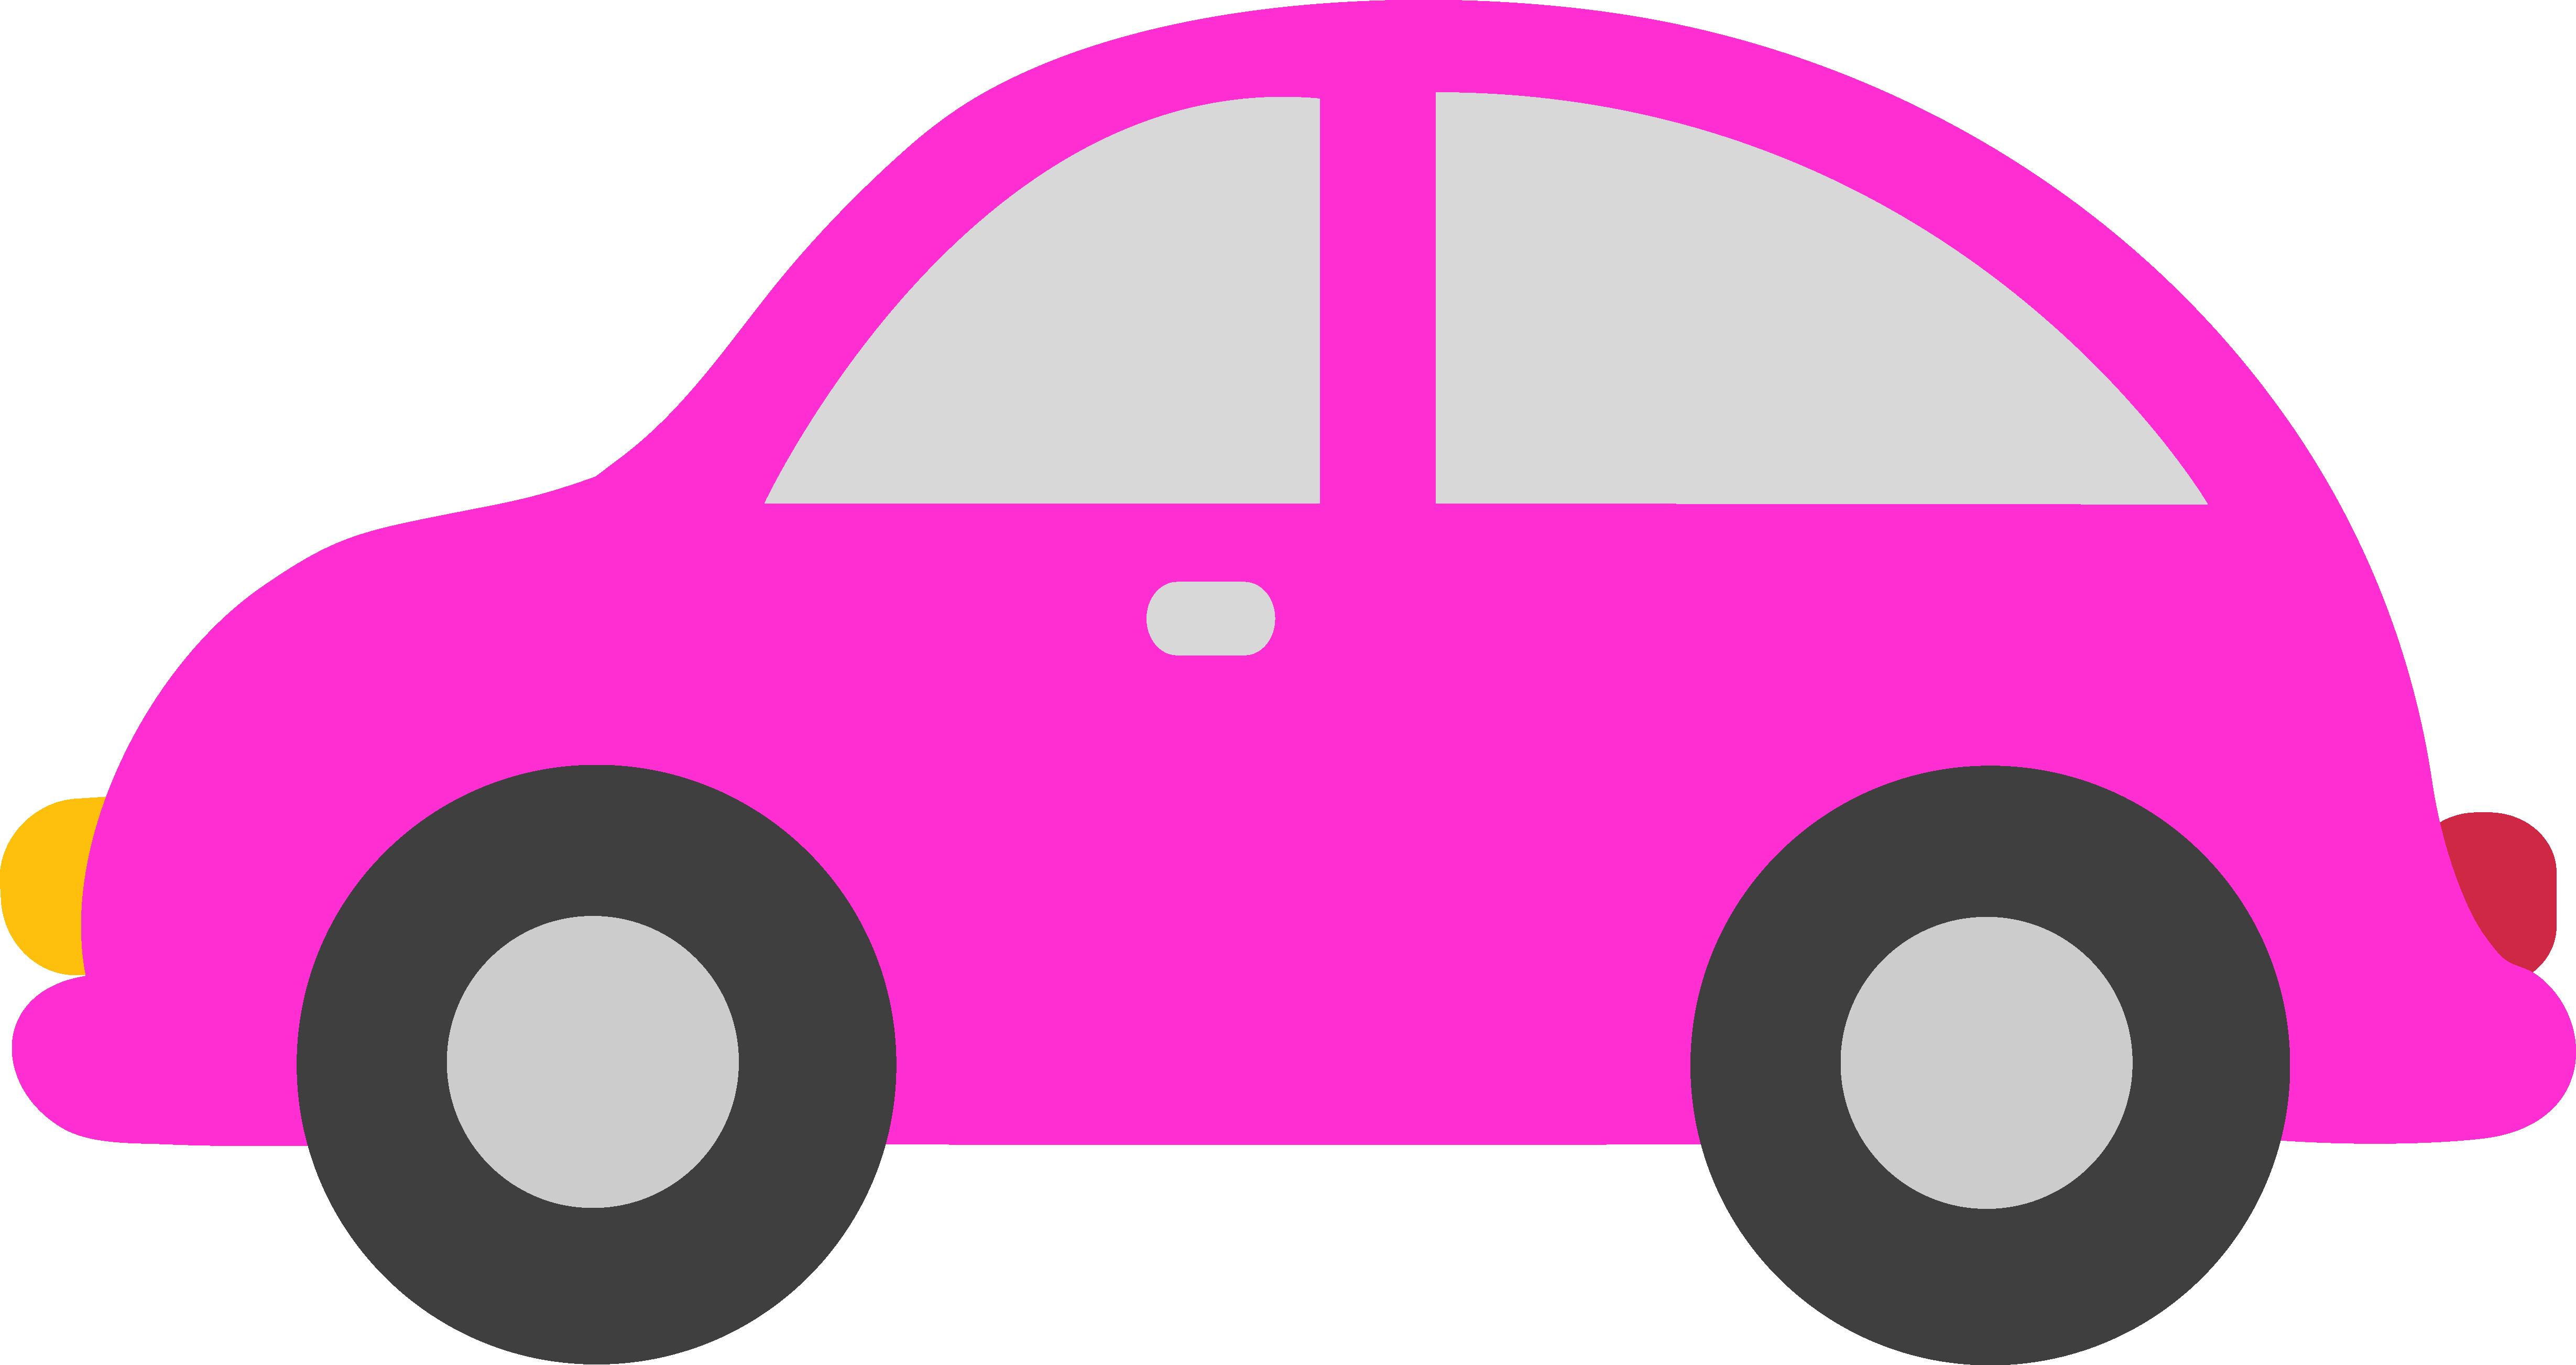 Car hd clipart clipart library stock HD Toy Car Png - Pink Toy Car Clipart , Free Unlimited Download ... clipart library stock